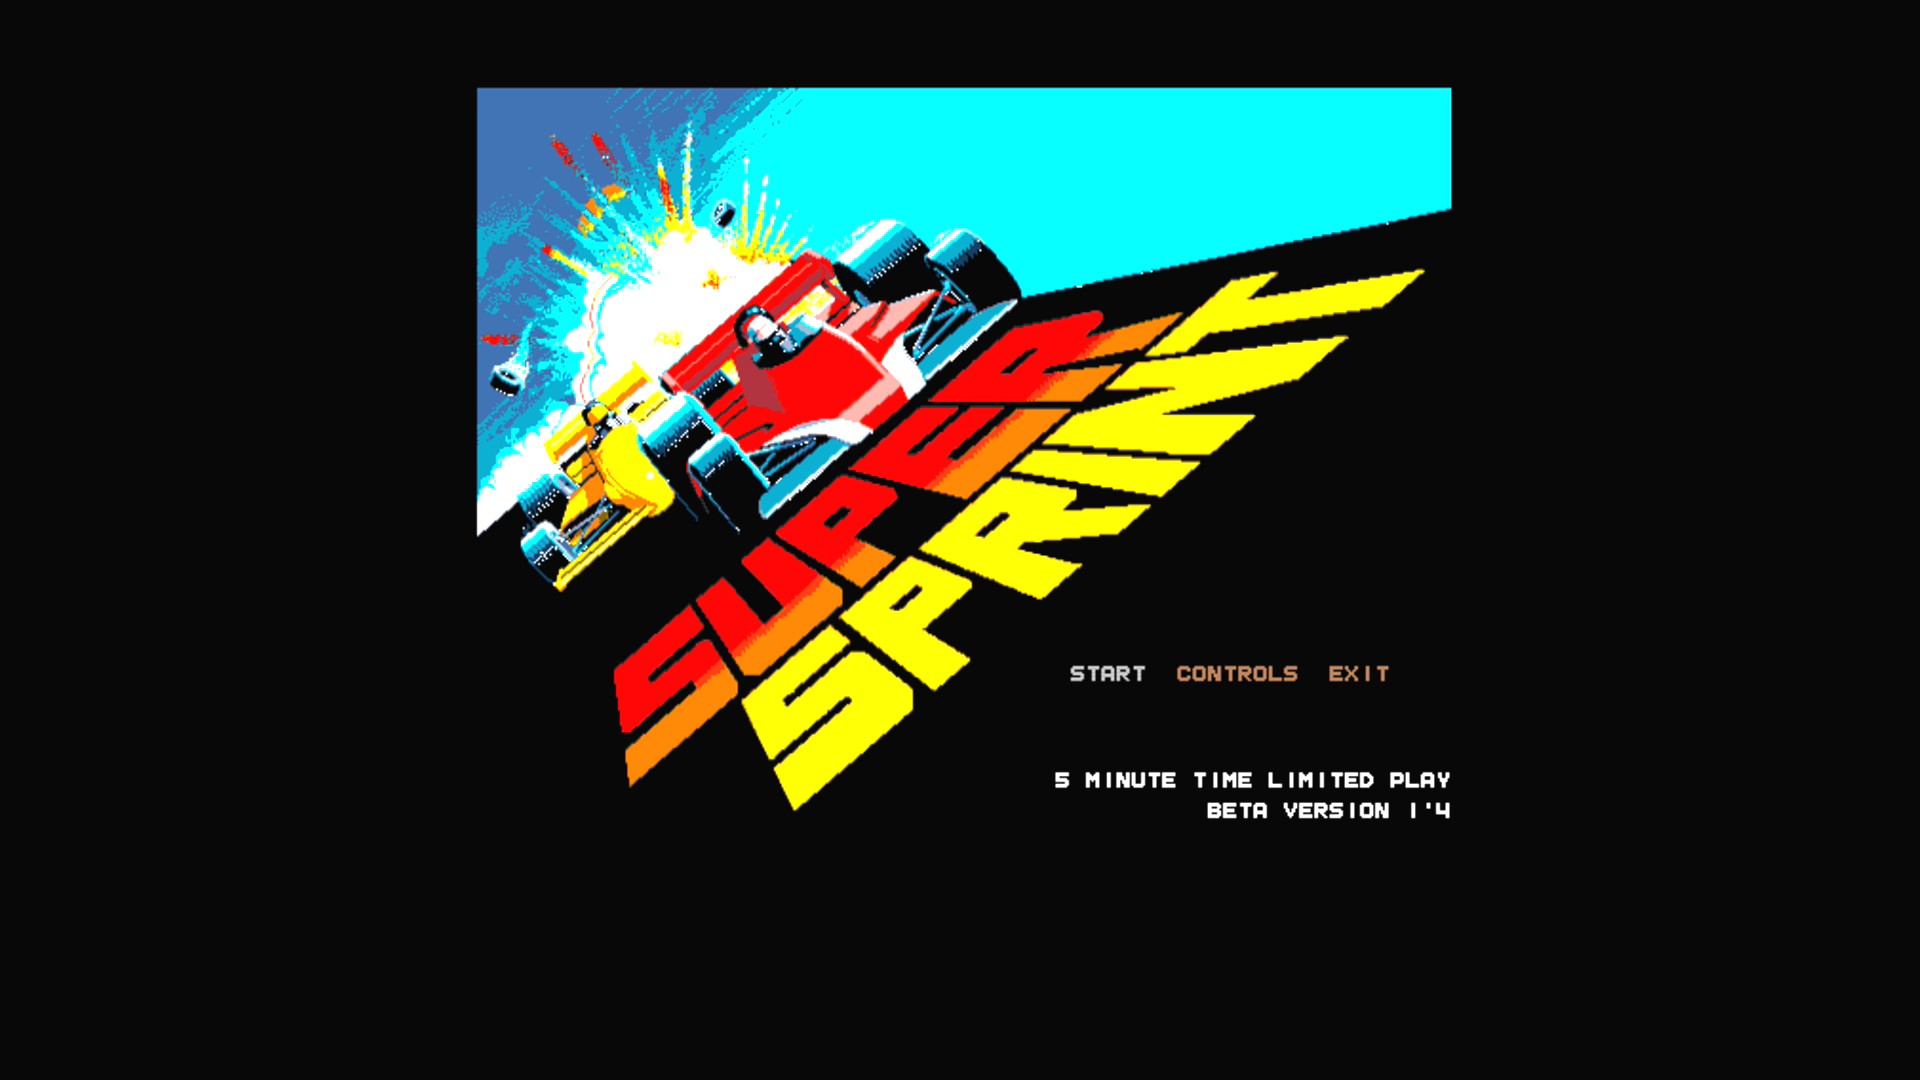 The highly anticipated Amiga game Turbo Sprint is here!